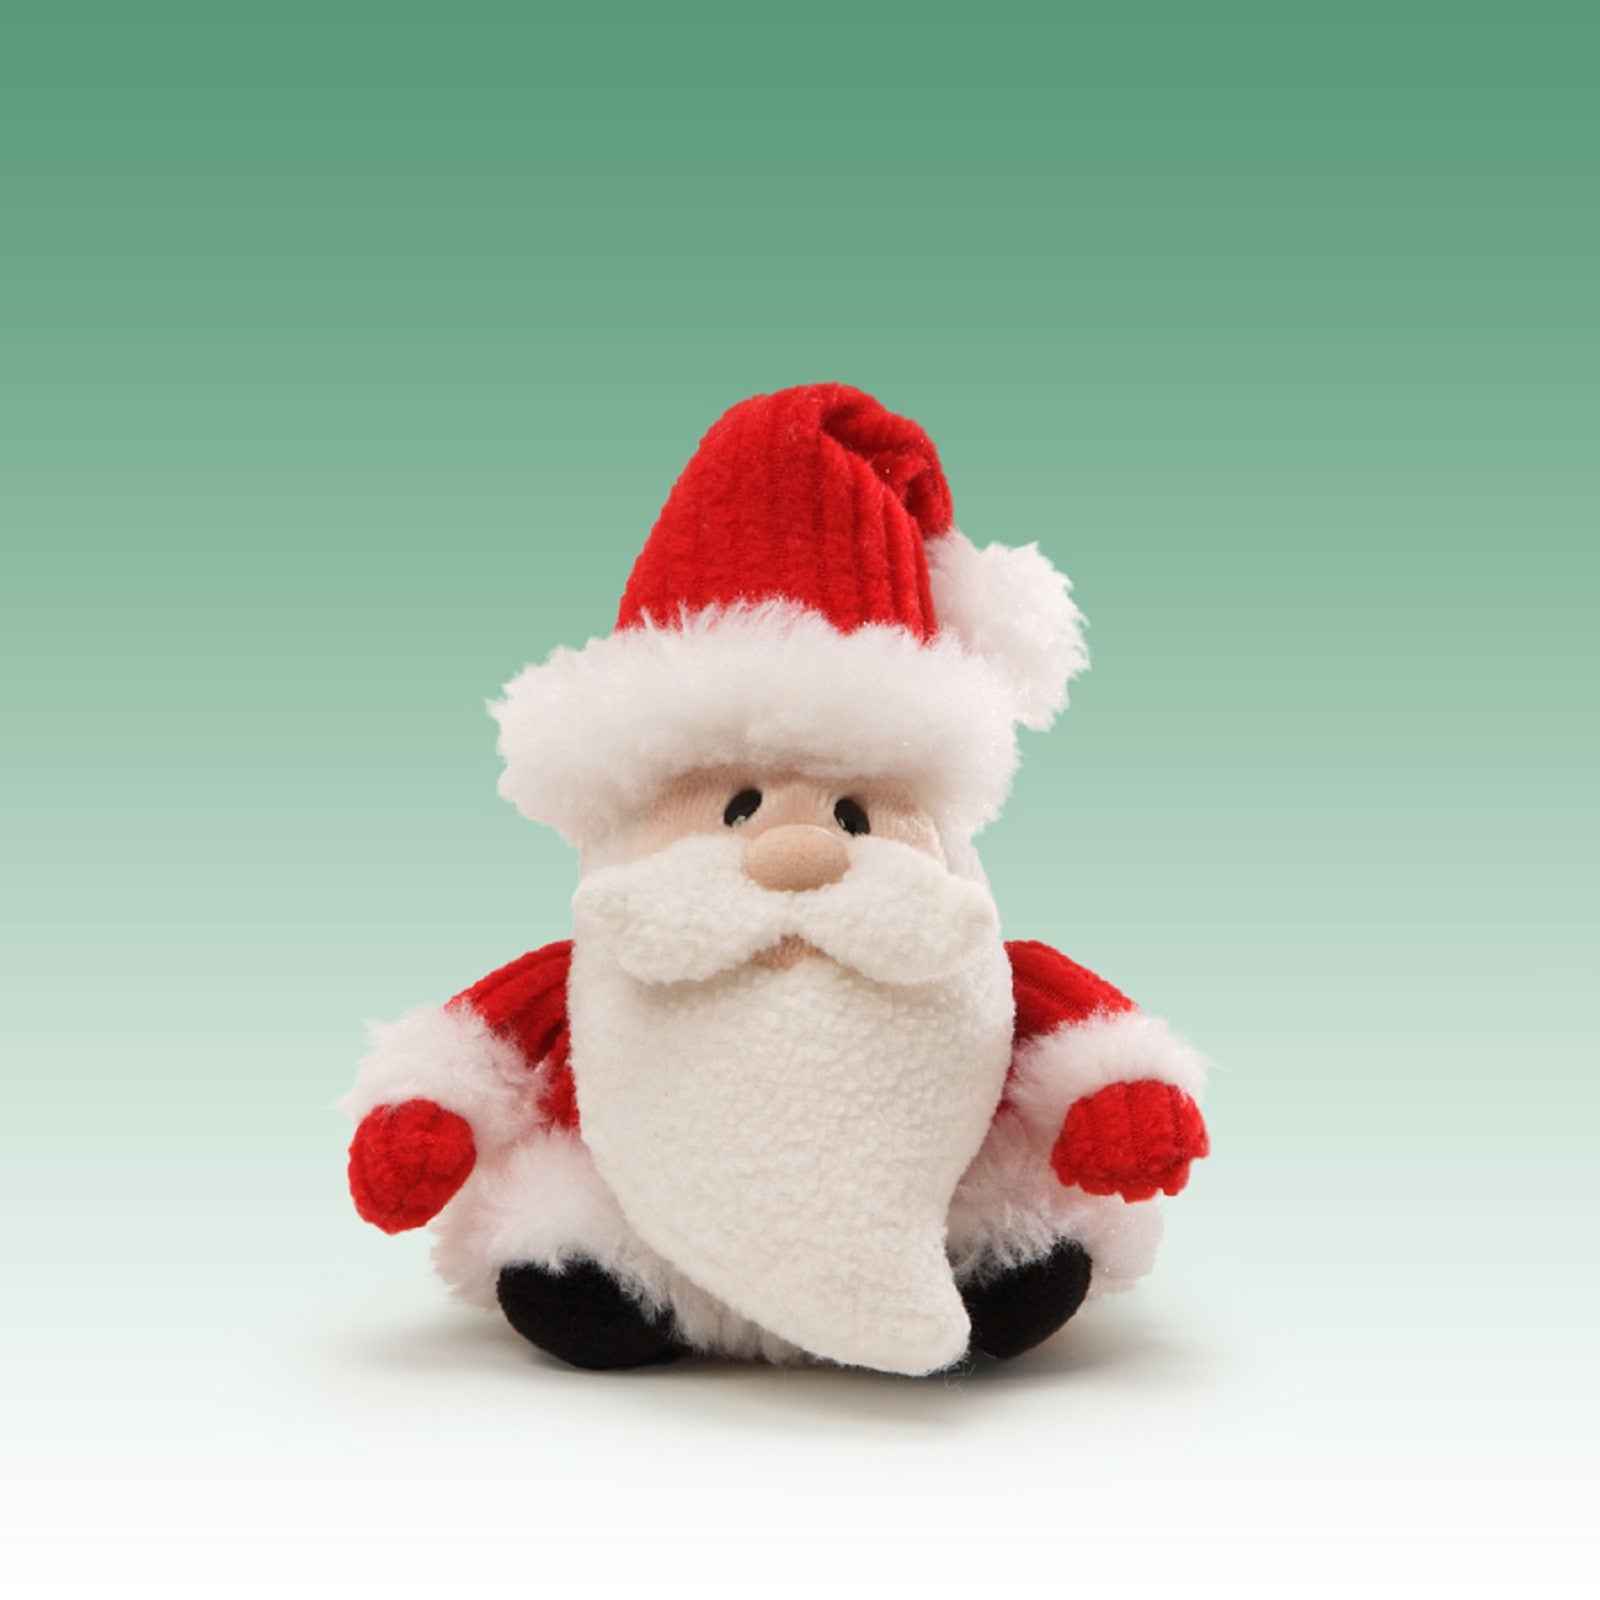 Gund - Santa in 2 Sizes